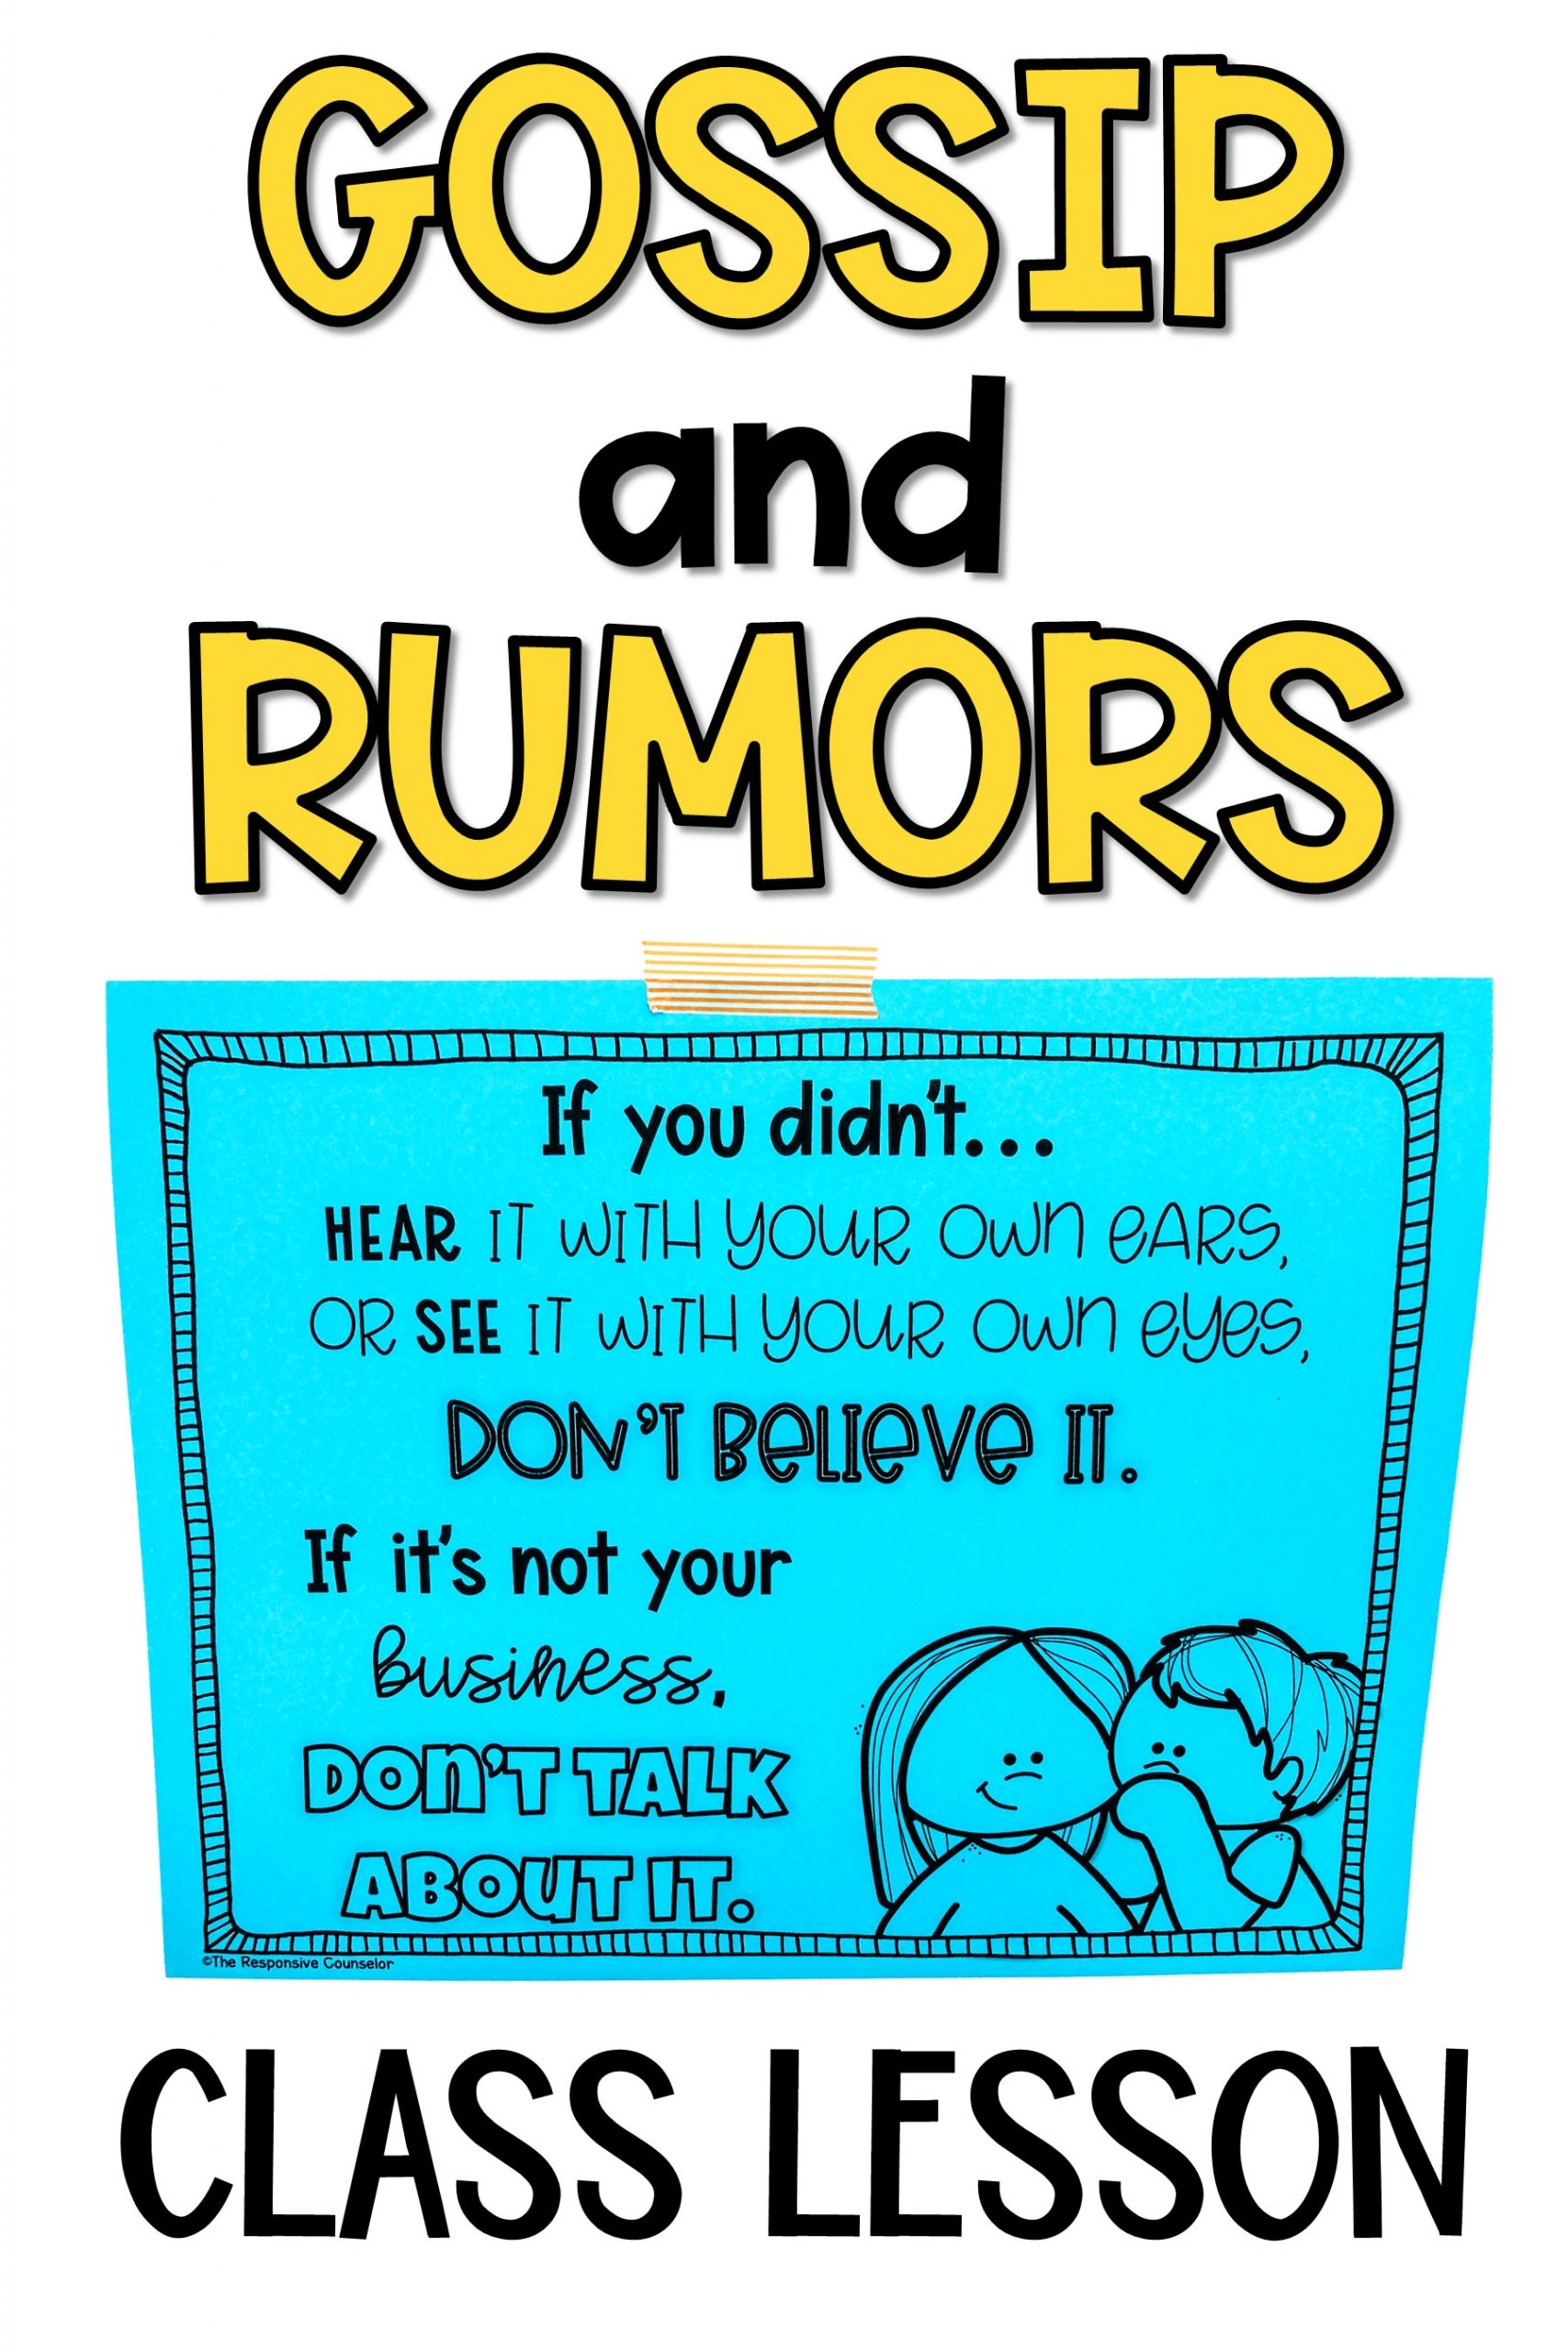 gossip and rumors lesson